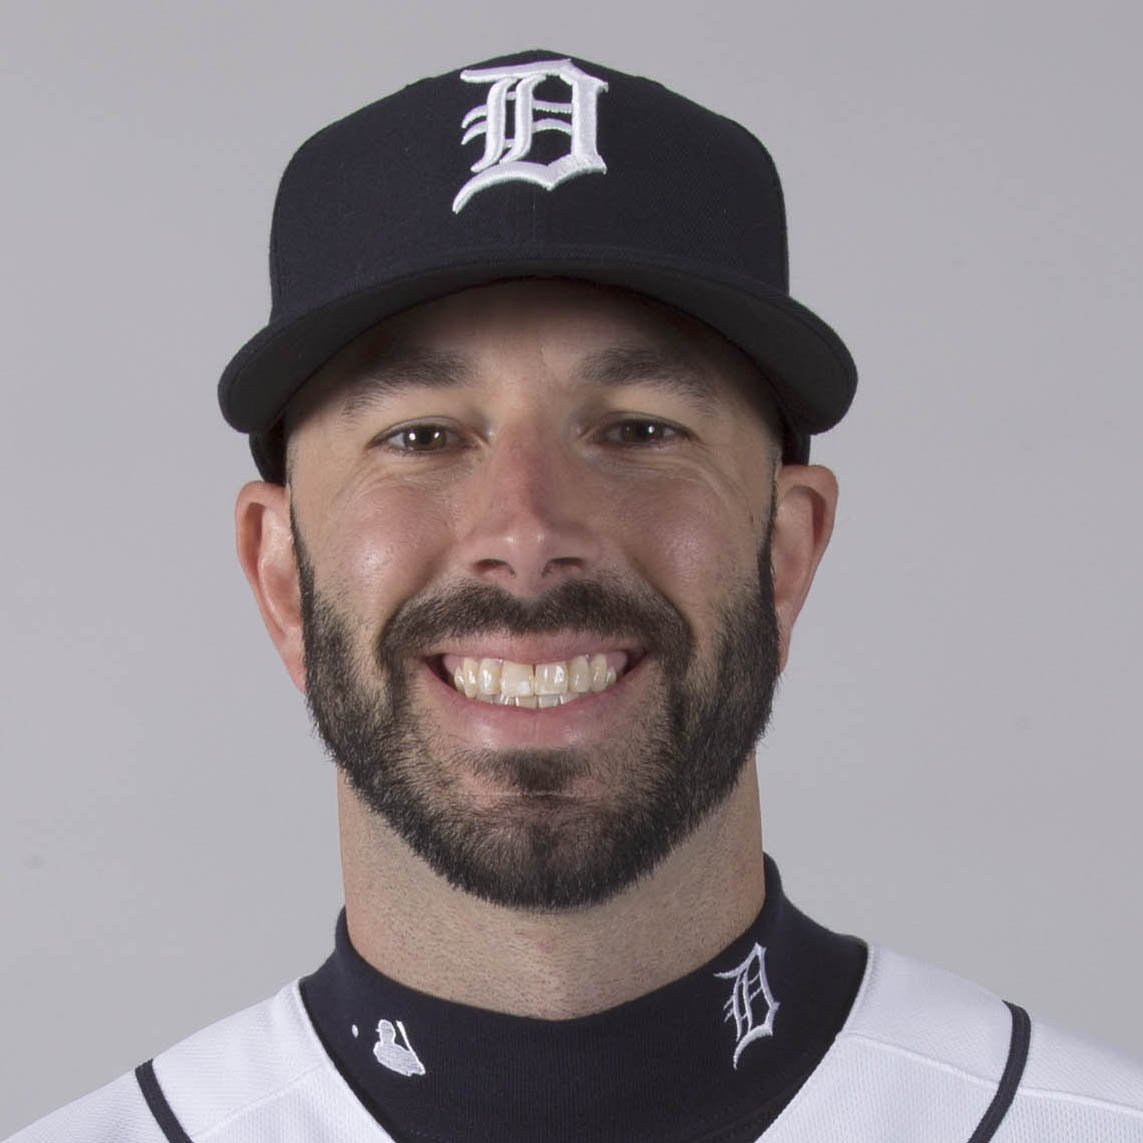 Mike Fiers (R) Headshot